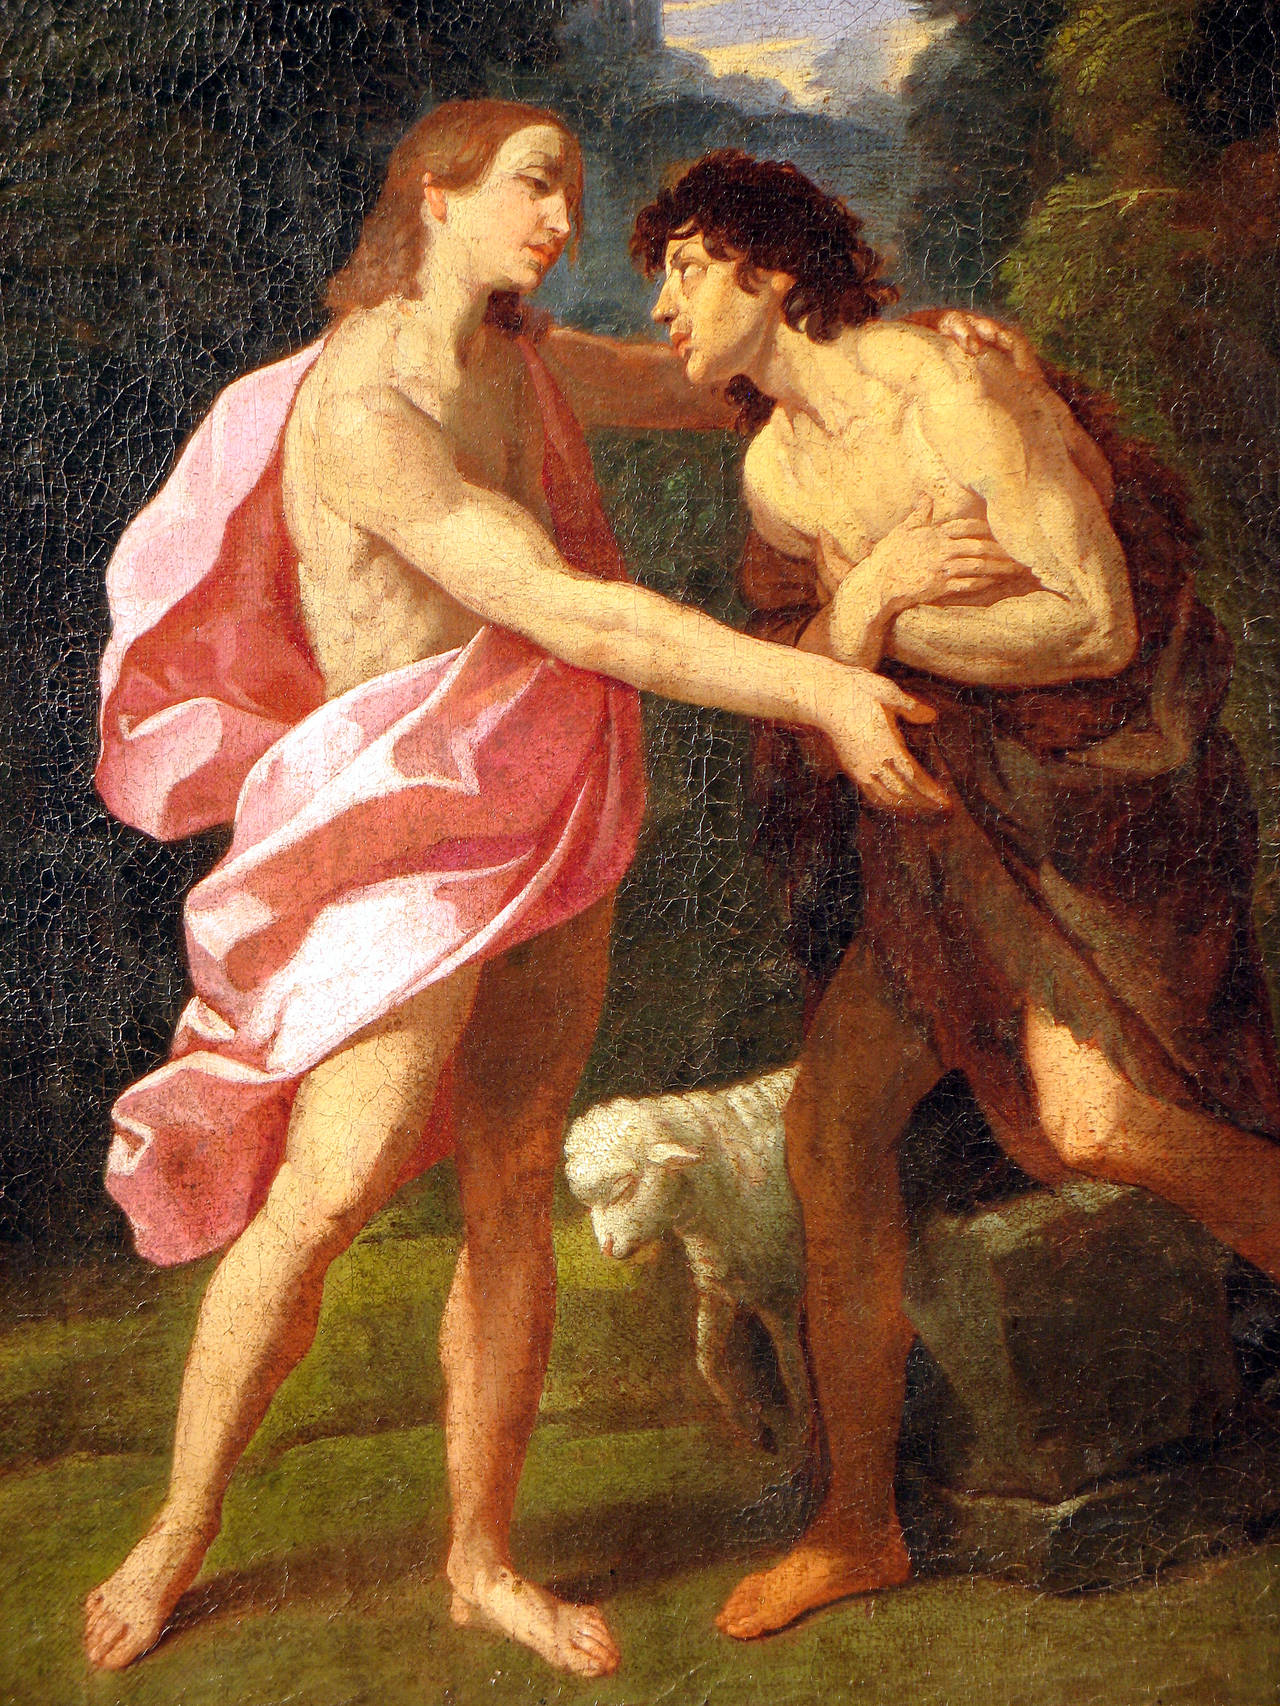 """Similar in style to Guido Reni's late masterpiece """"The Baptism of Christ,"""" circa 1623, this painting by a follower of Guido Reni captures Reni's unique balance of strictly disciplined compositional form and profound intimate sentiment.  Born in"""